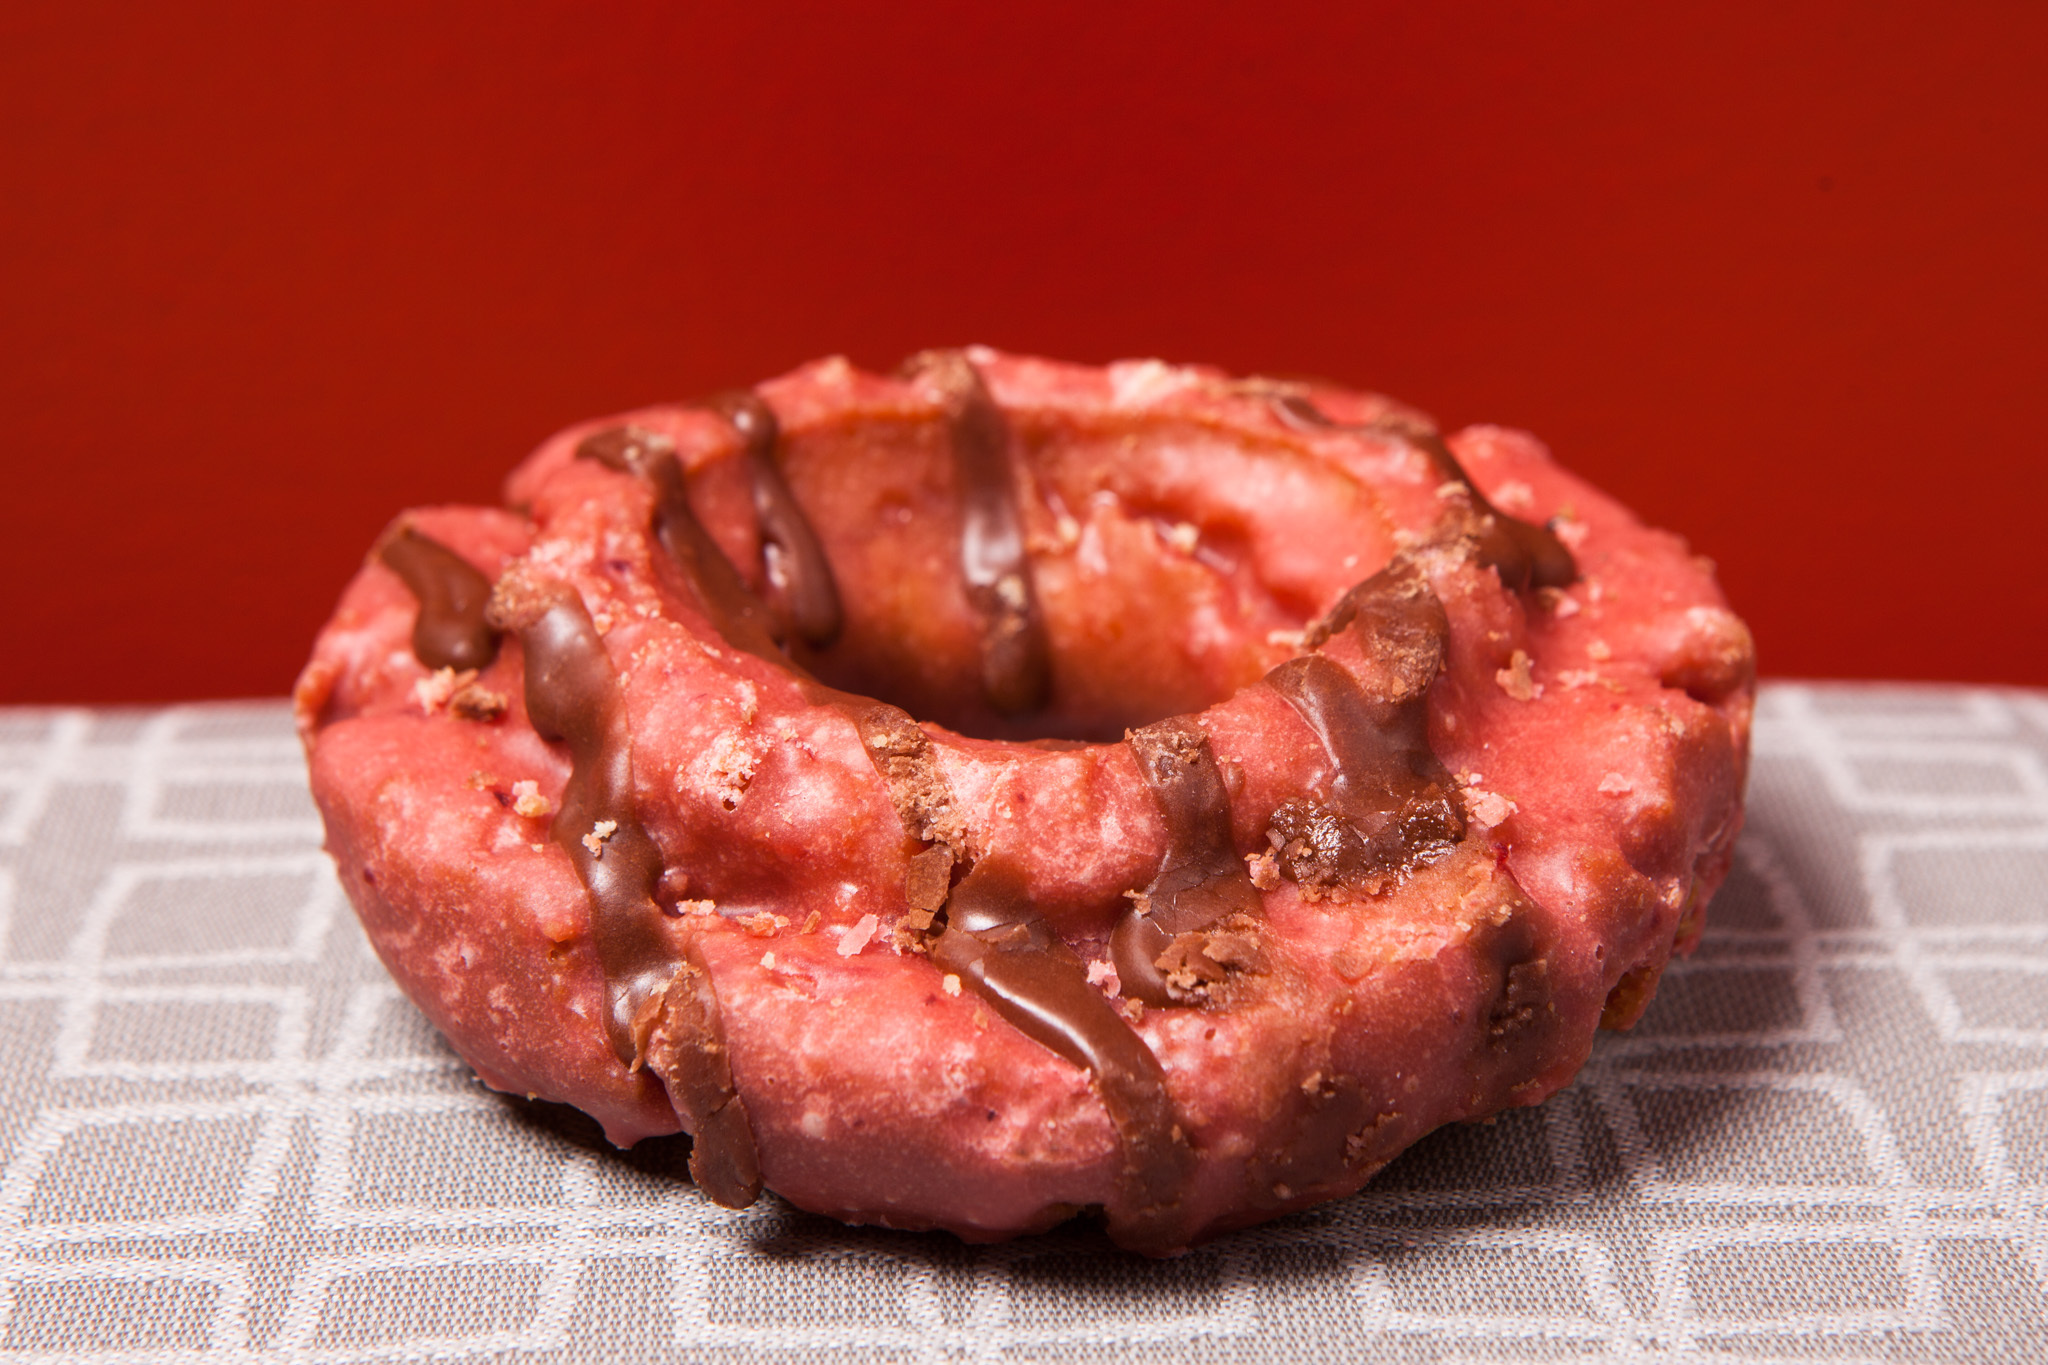 Strawberry chocolate doughnut at Doughnut Vault.